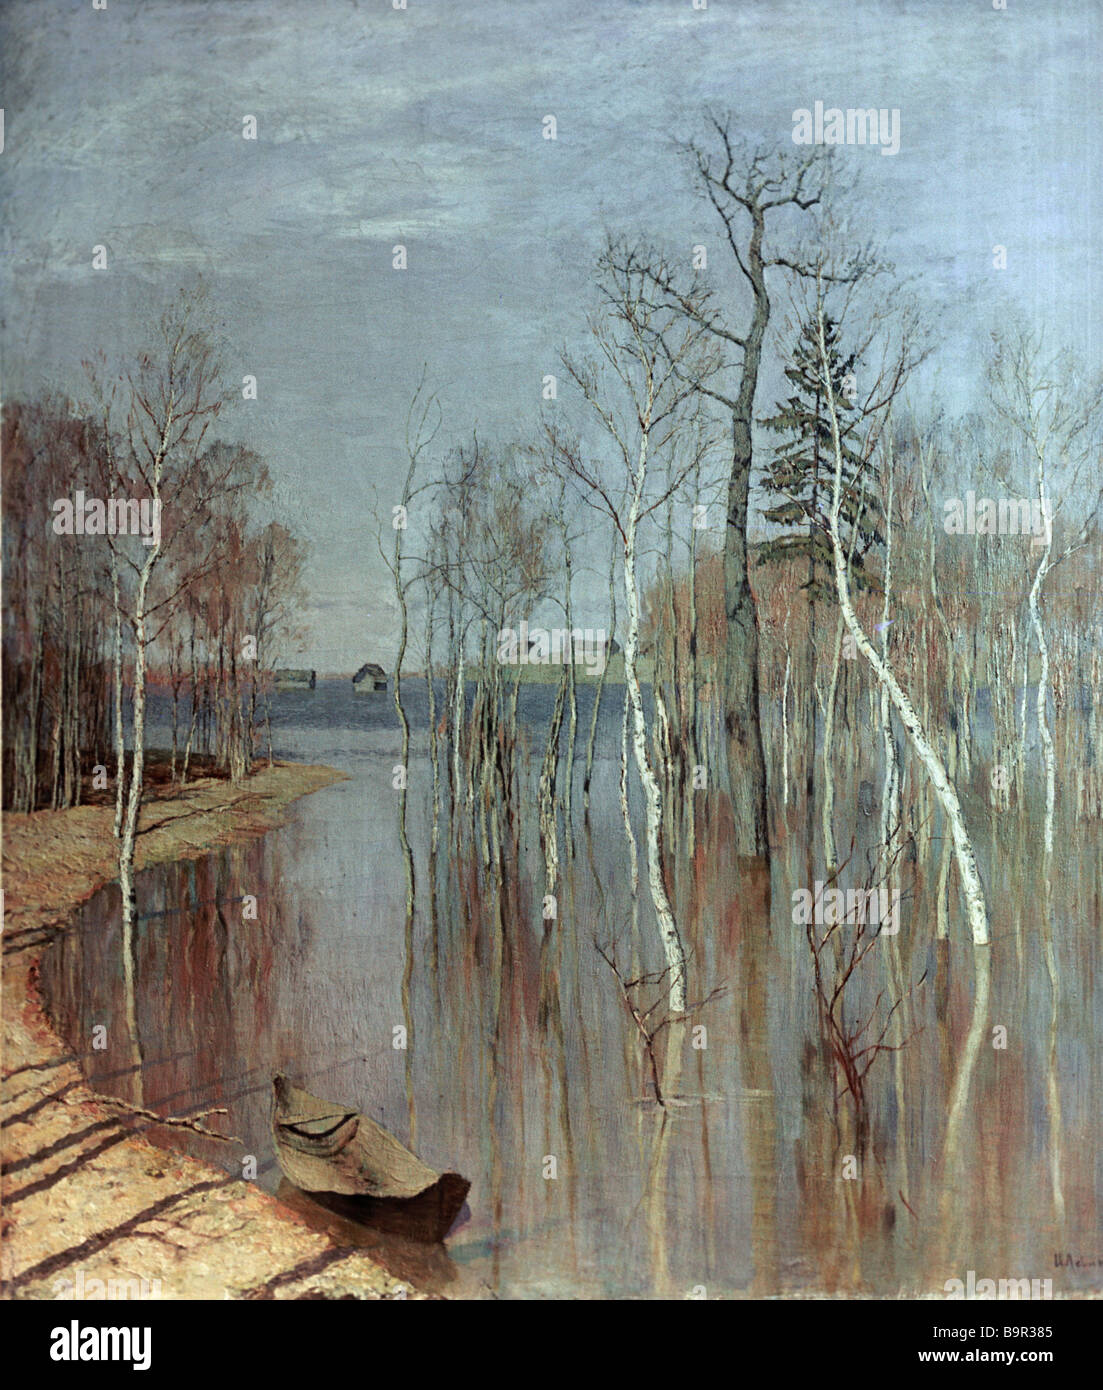 Picture Levitan Spring. High water or Edge, reminiscent of paradise 50